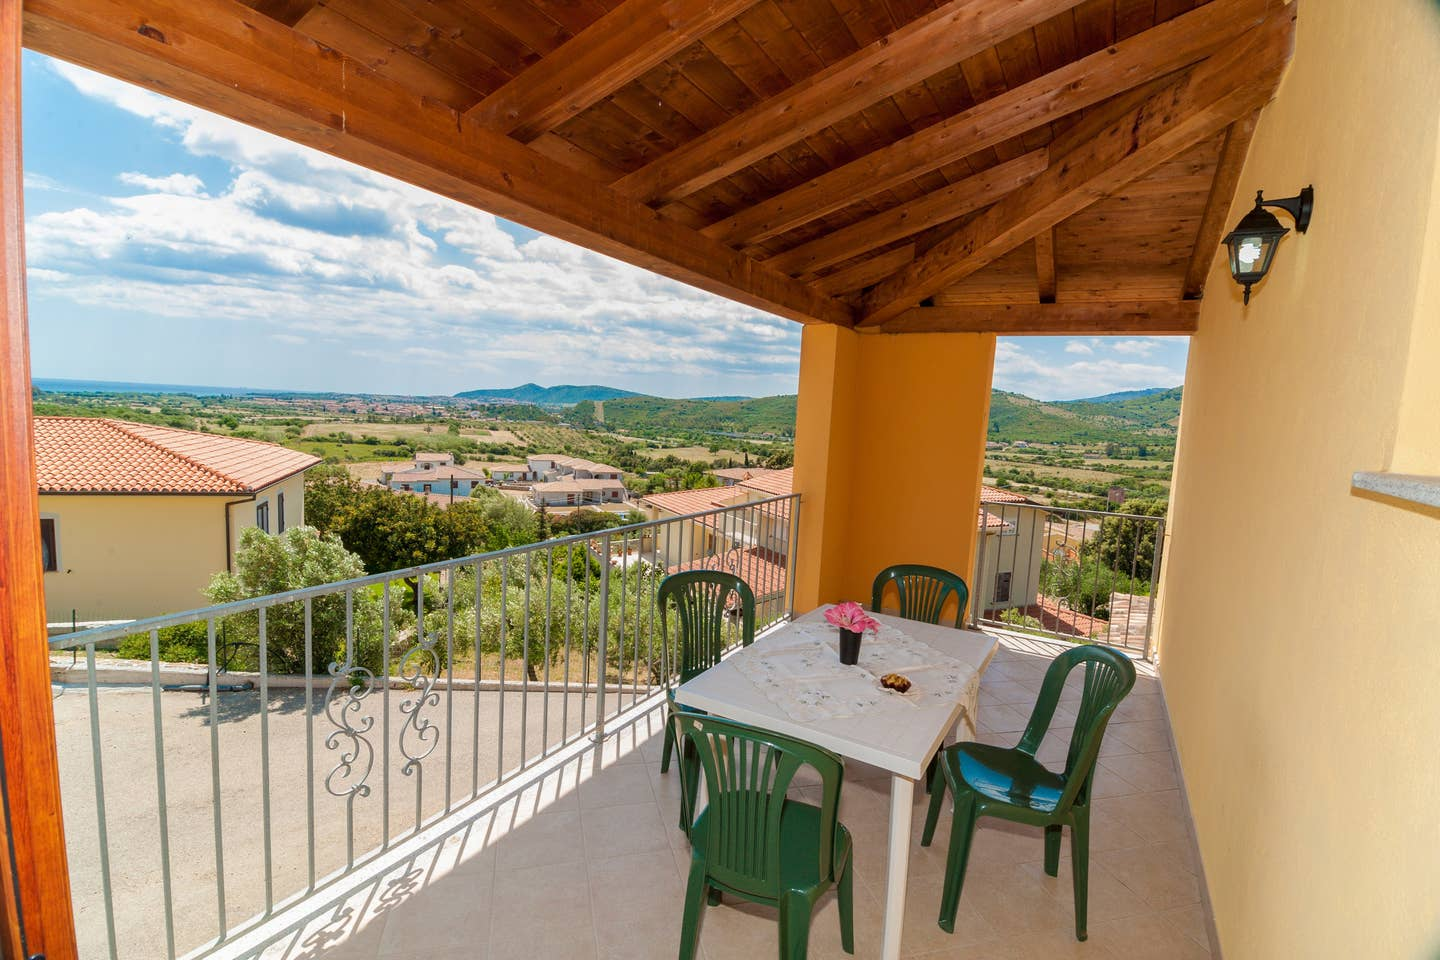 Apartment Bilocale Corte di Gallura 5 photo 18658446